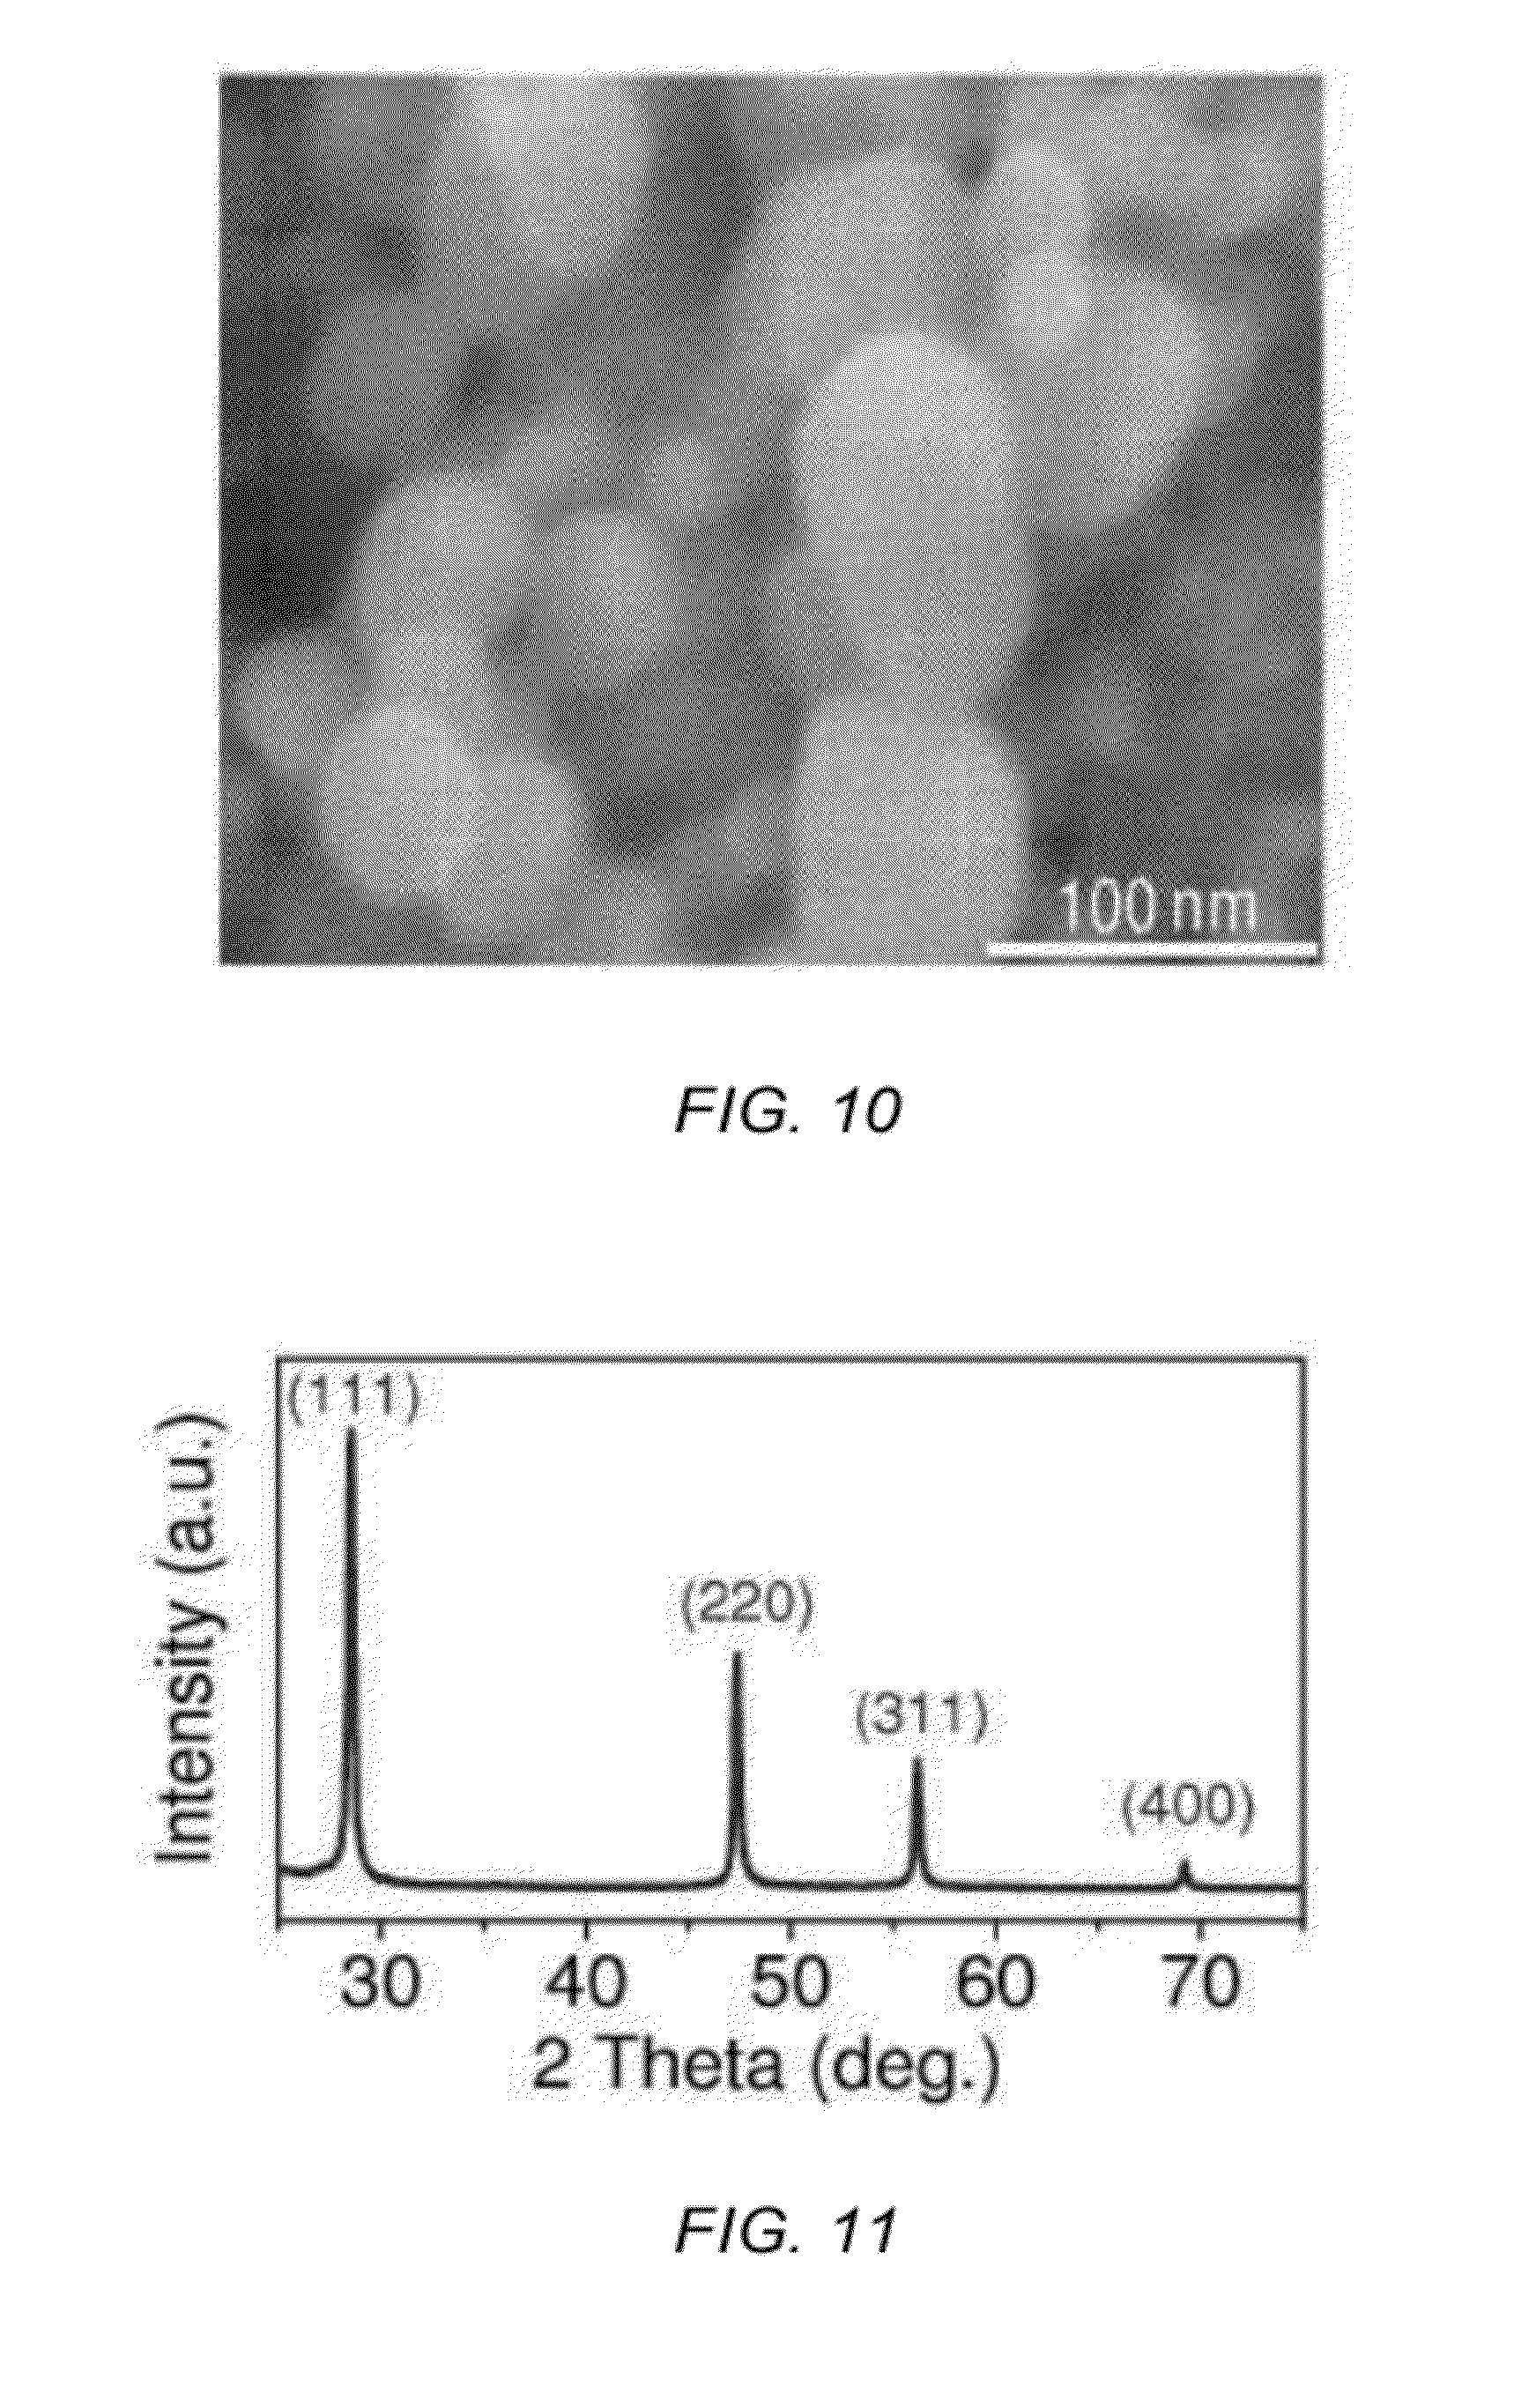 US20120088155A1 - Alginate-containing compositions for use